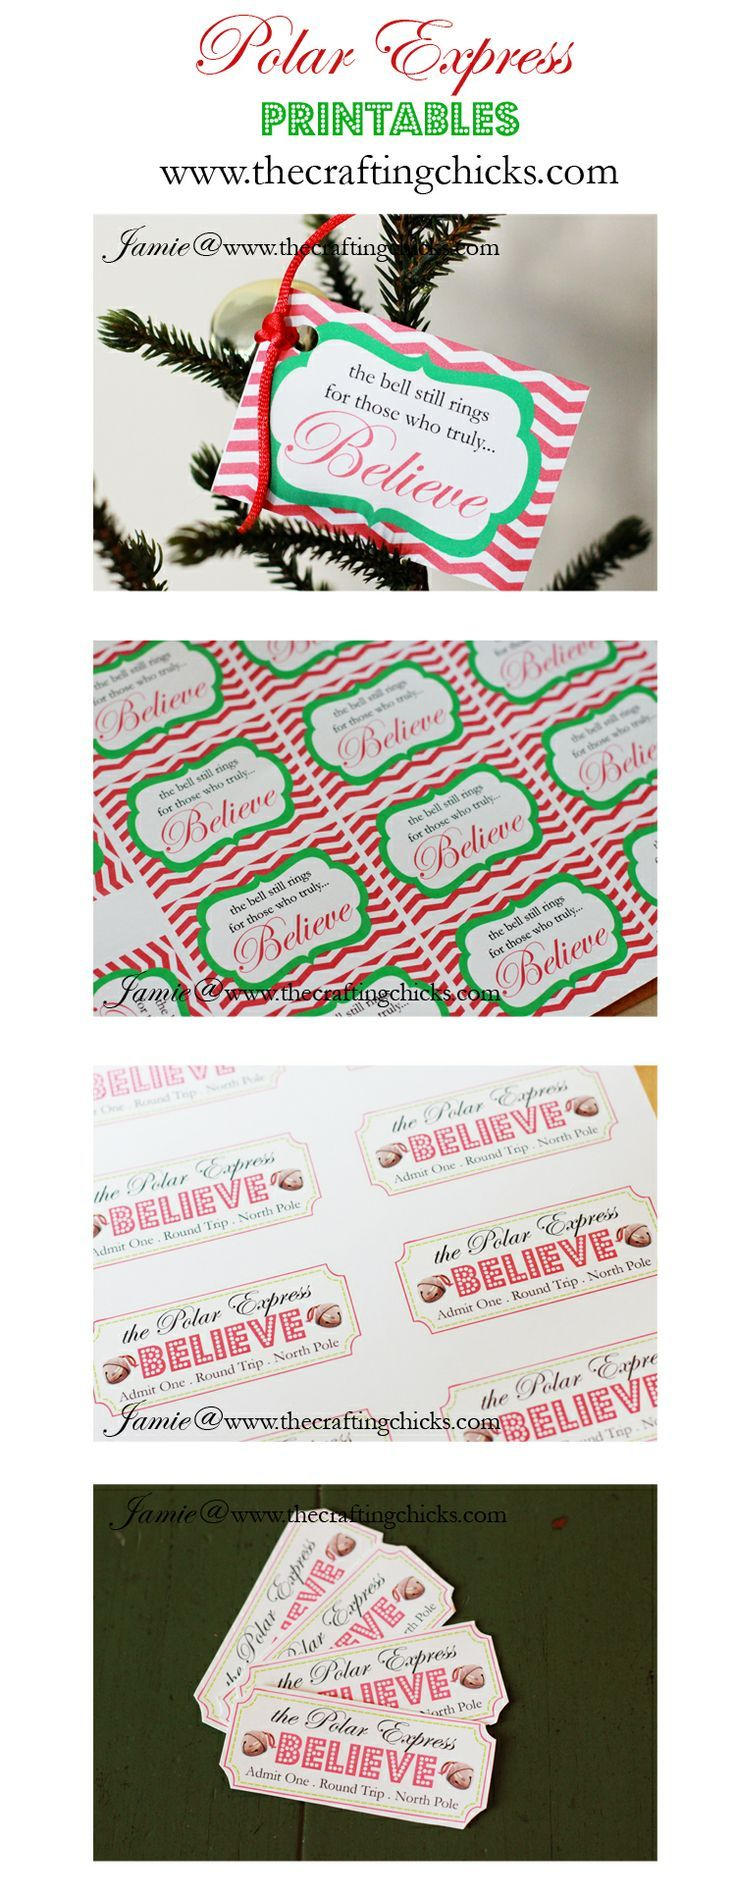 Polar Express Printables - includes a download with tickets and bell tags. Found this for my grandson after his ticket made an accidental trip through the washer (in the pocket of his pjs!)